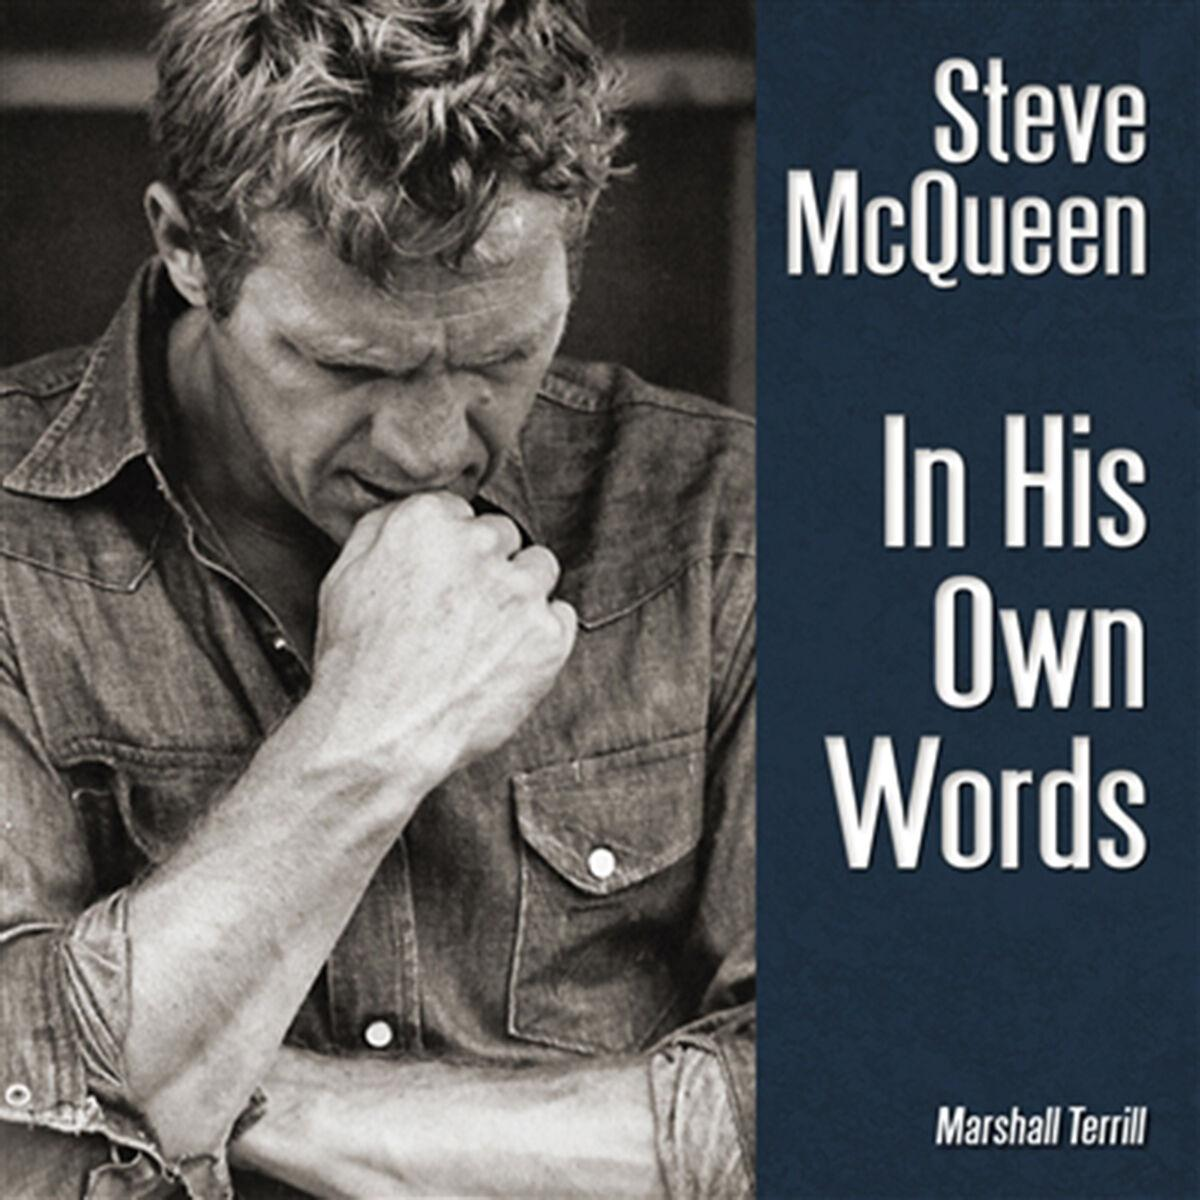 BOOKS-BOOK-STEVE-MCQUEEN-REVIEW-MCT